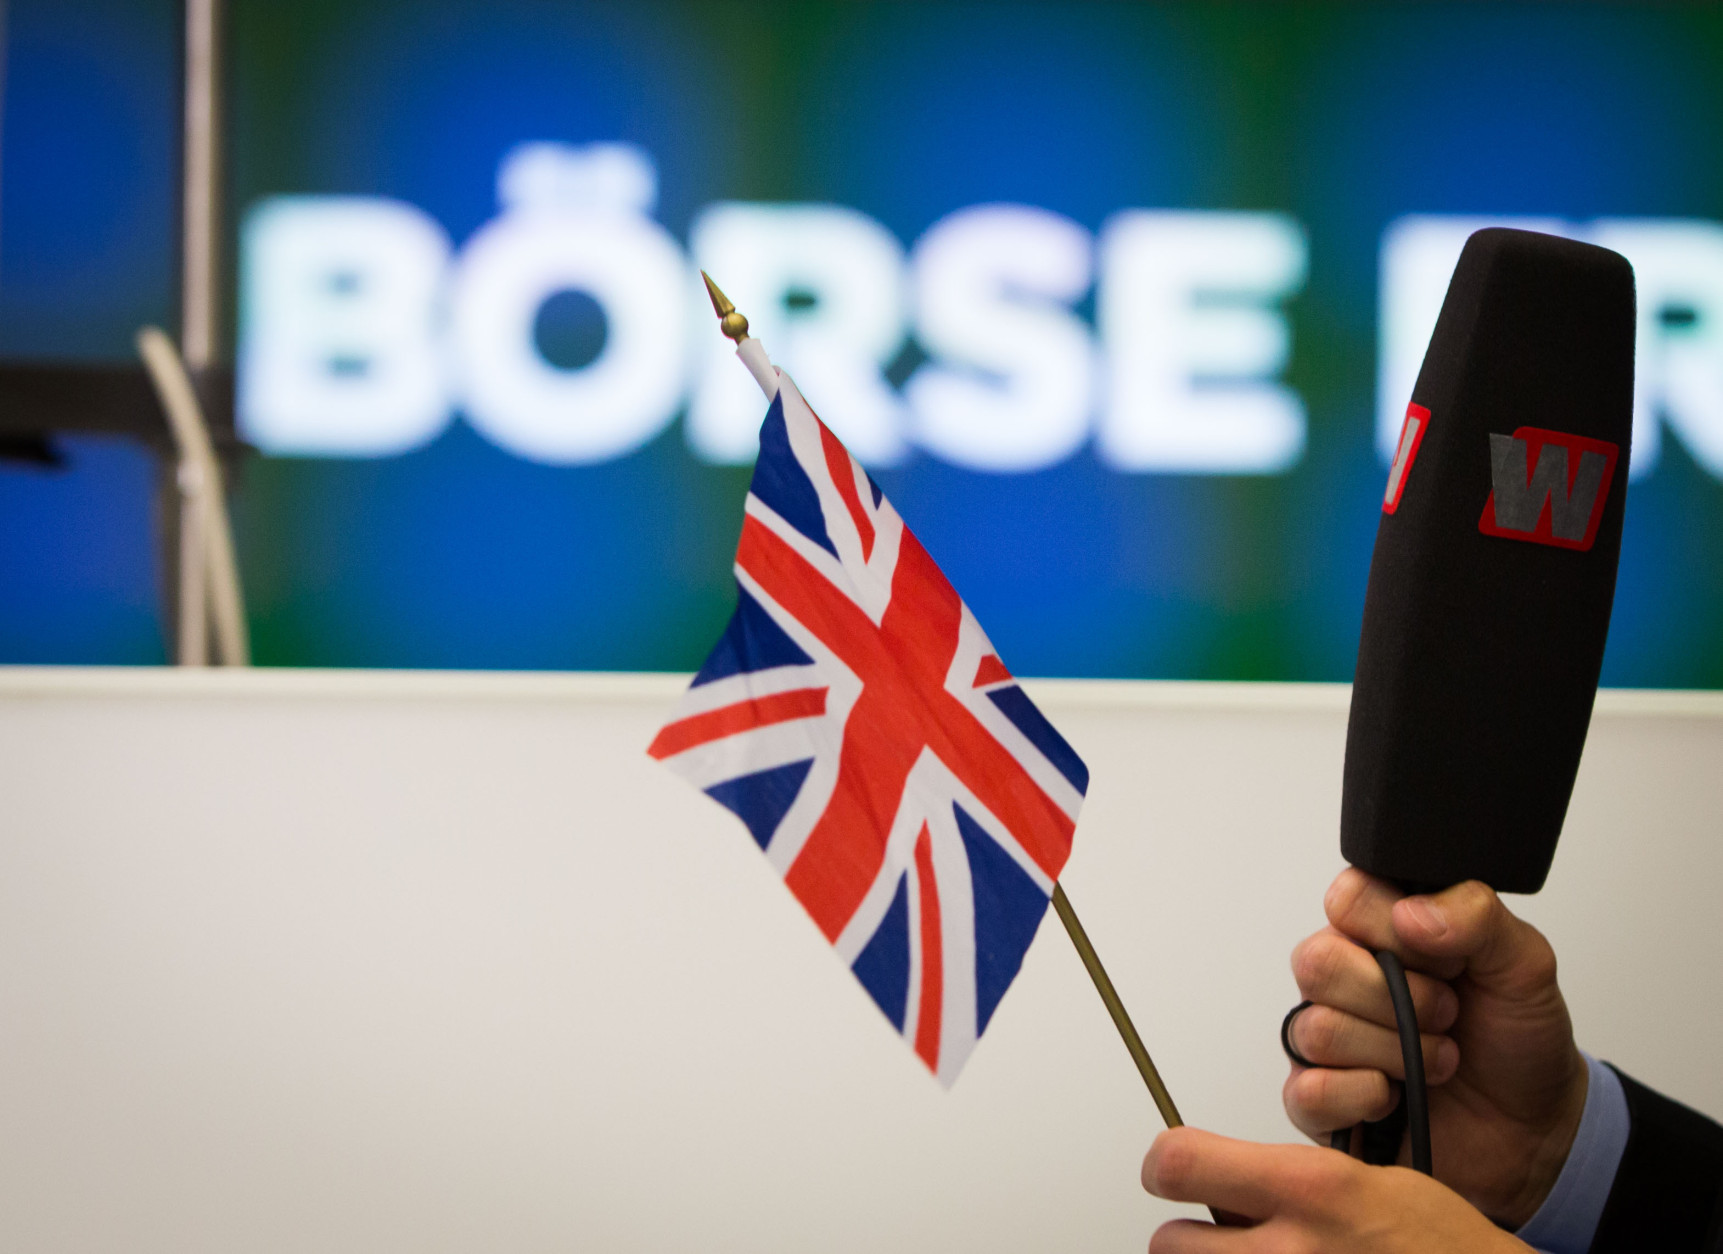 The anchor of a financial news channel holds a British flag as he reports from the trading floor of the Frankfurt, Germany, stock exchange Friday, June 24, 2016 after Britain voted to leave the EU. (Frank Rumpenhorst/dpa via AP)